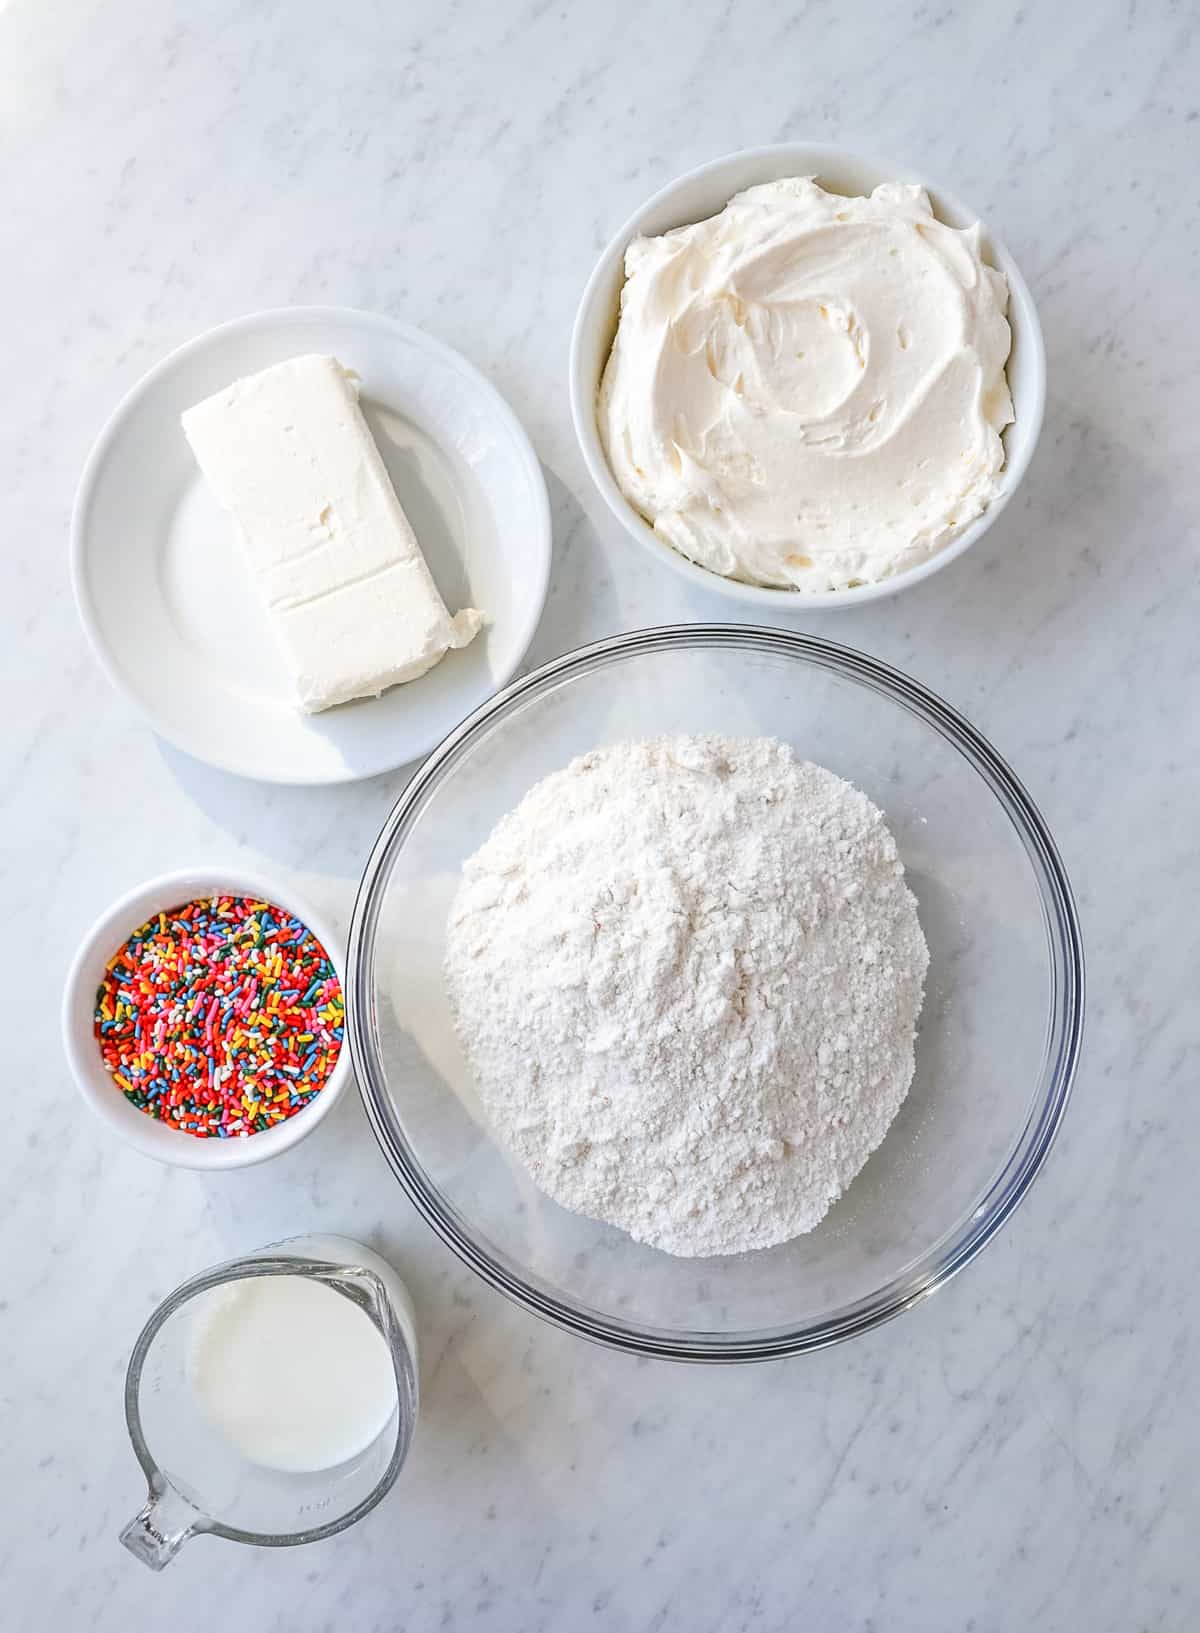 Ingredients needed to make Funfetti Dip